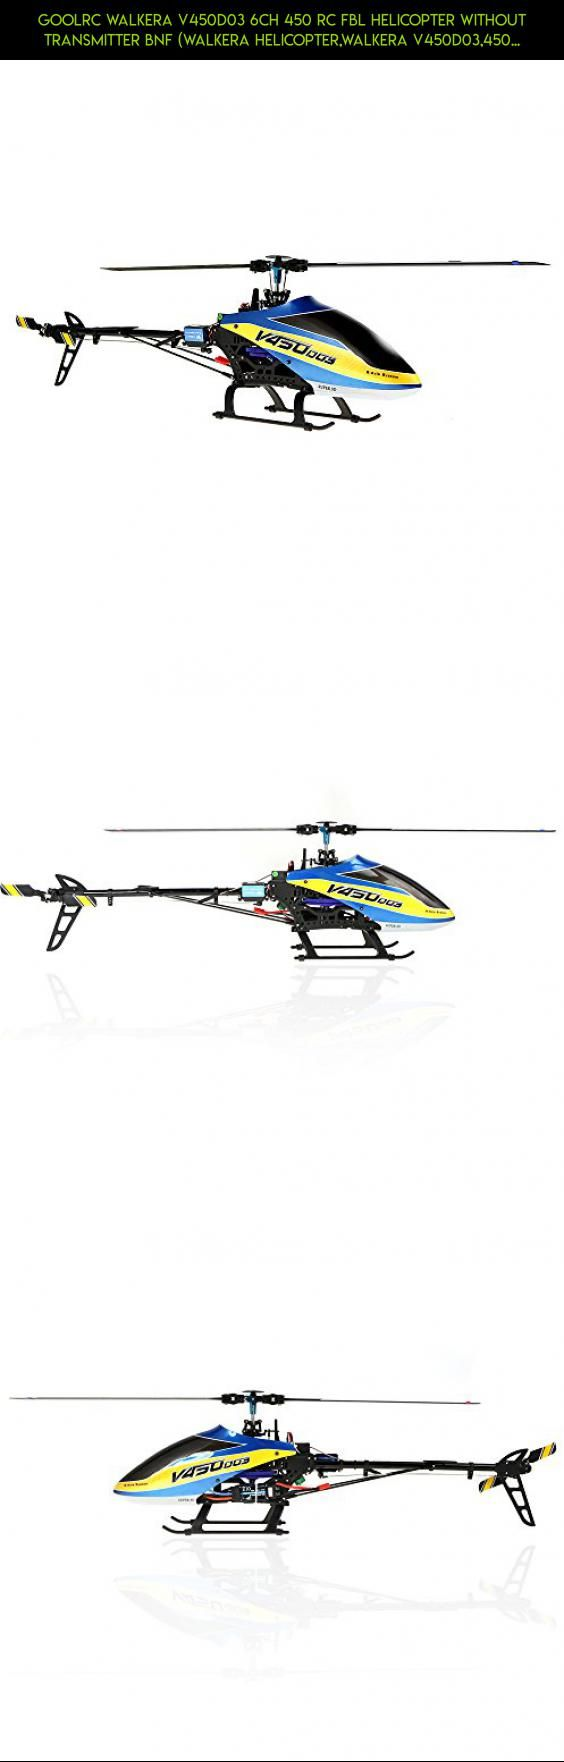 GoolRC Walkera V450D03 6CH 450 RC FBL Helicopter Without Transmitter BNF (Walkera Helicopter,Walkera V450D03,450 Helicopter) #walkera #shopping #drone #fpv #technology #gadgets #camera #plans #parts #racing #products #450 #kit #tech